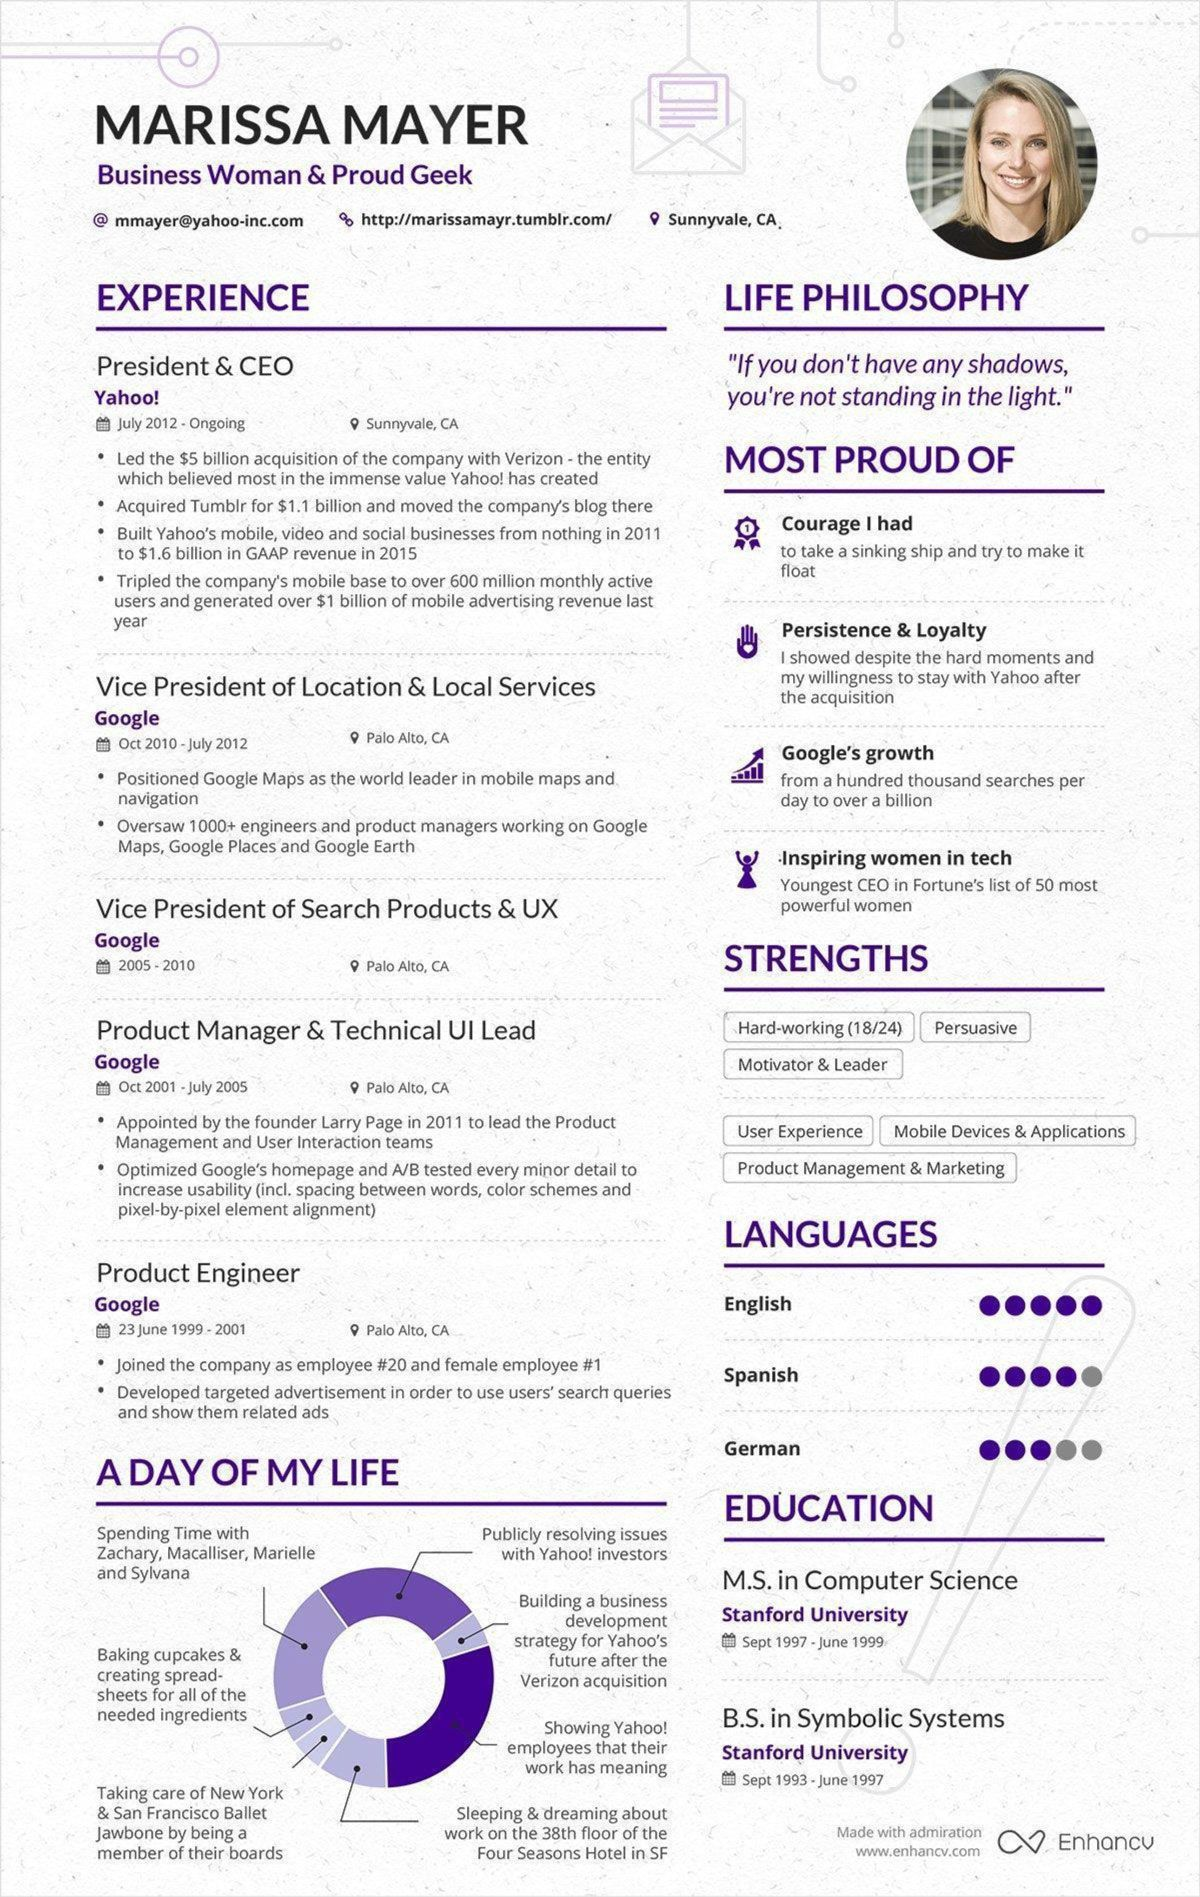 Poor Resume Examples Barista Careersavailable Resume Examples Medical Assistant Careertip Resumeexamples Resume Writing Examples Marissa Mayer Visual Resume